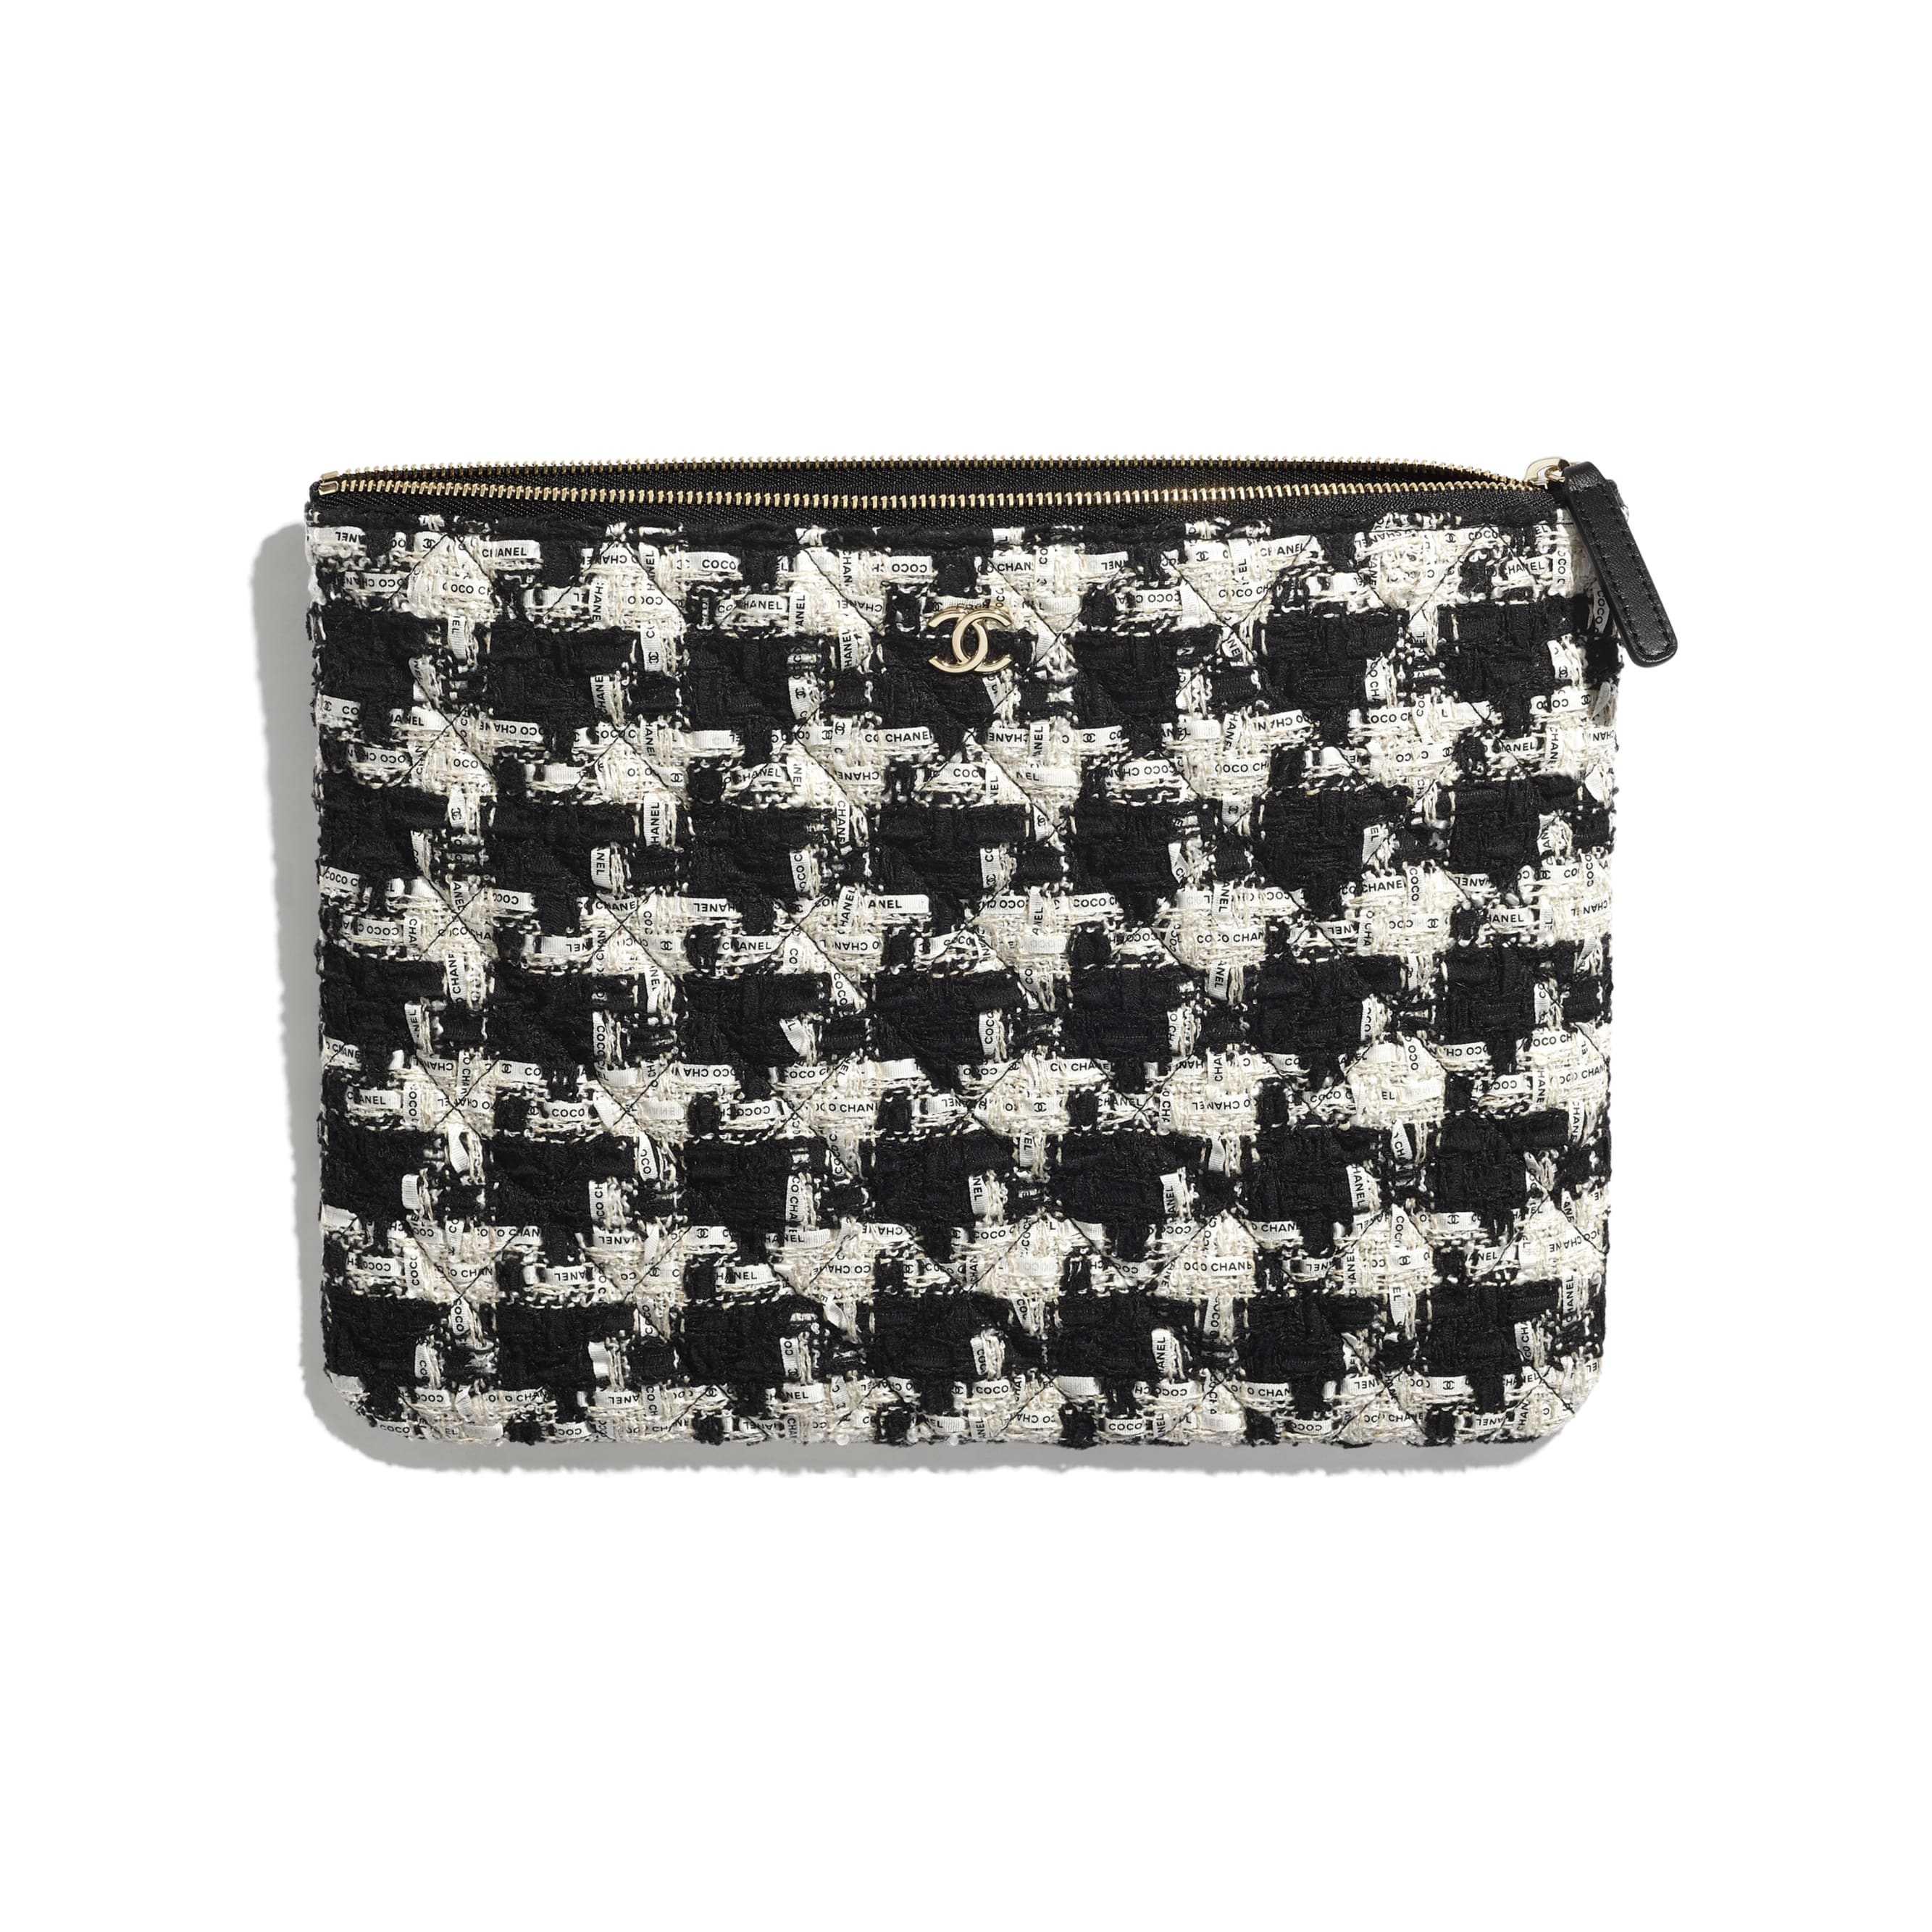 Classic Pouch - Black, Ecru & White - Tweed & Gold-Tone Metal - CHANEL - Other view - see standard sized version